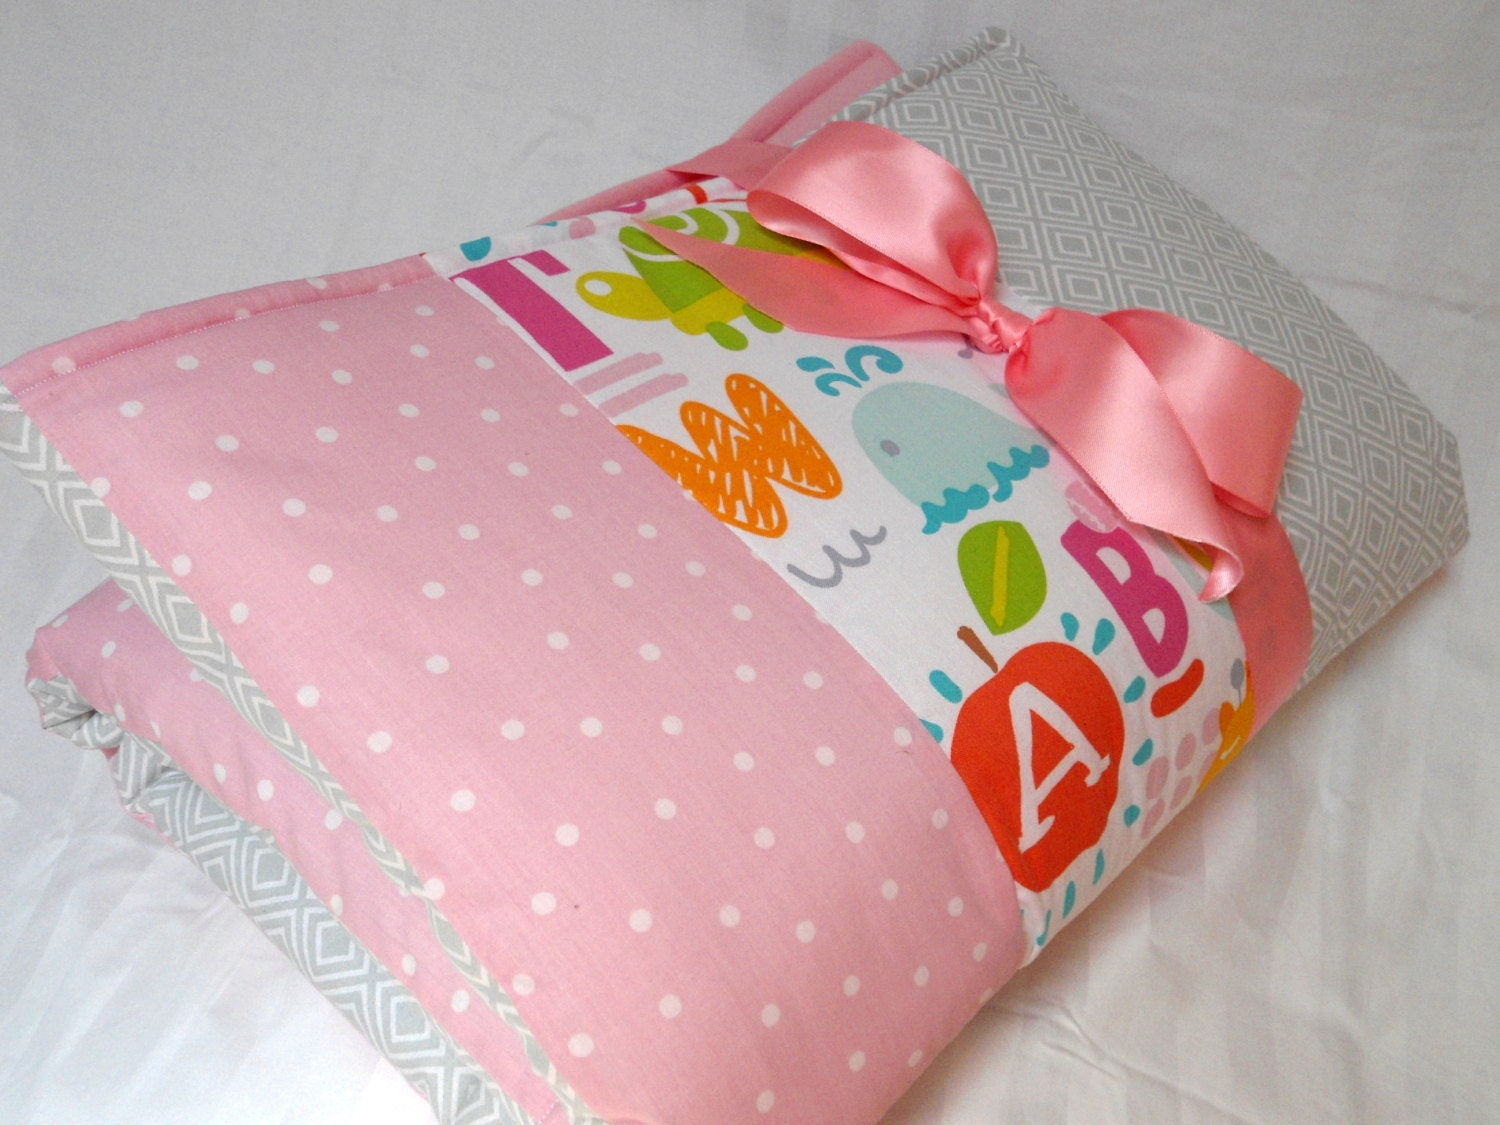 baby play mat padded floor blanket personalize pink gray